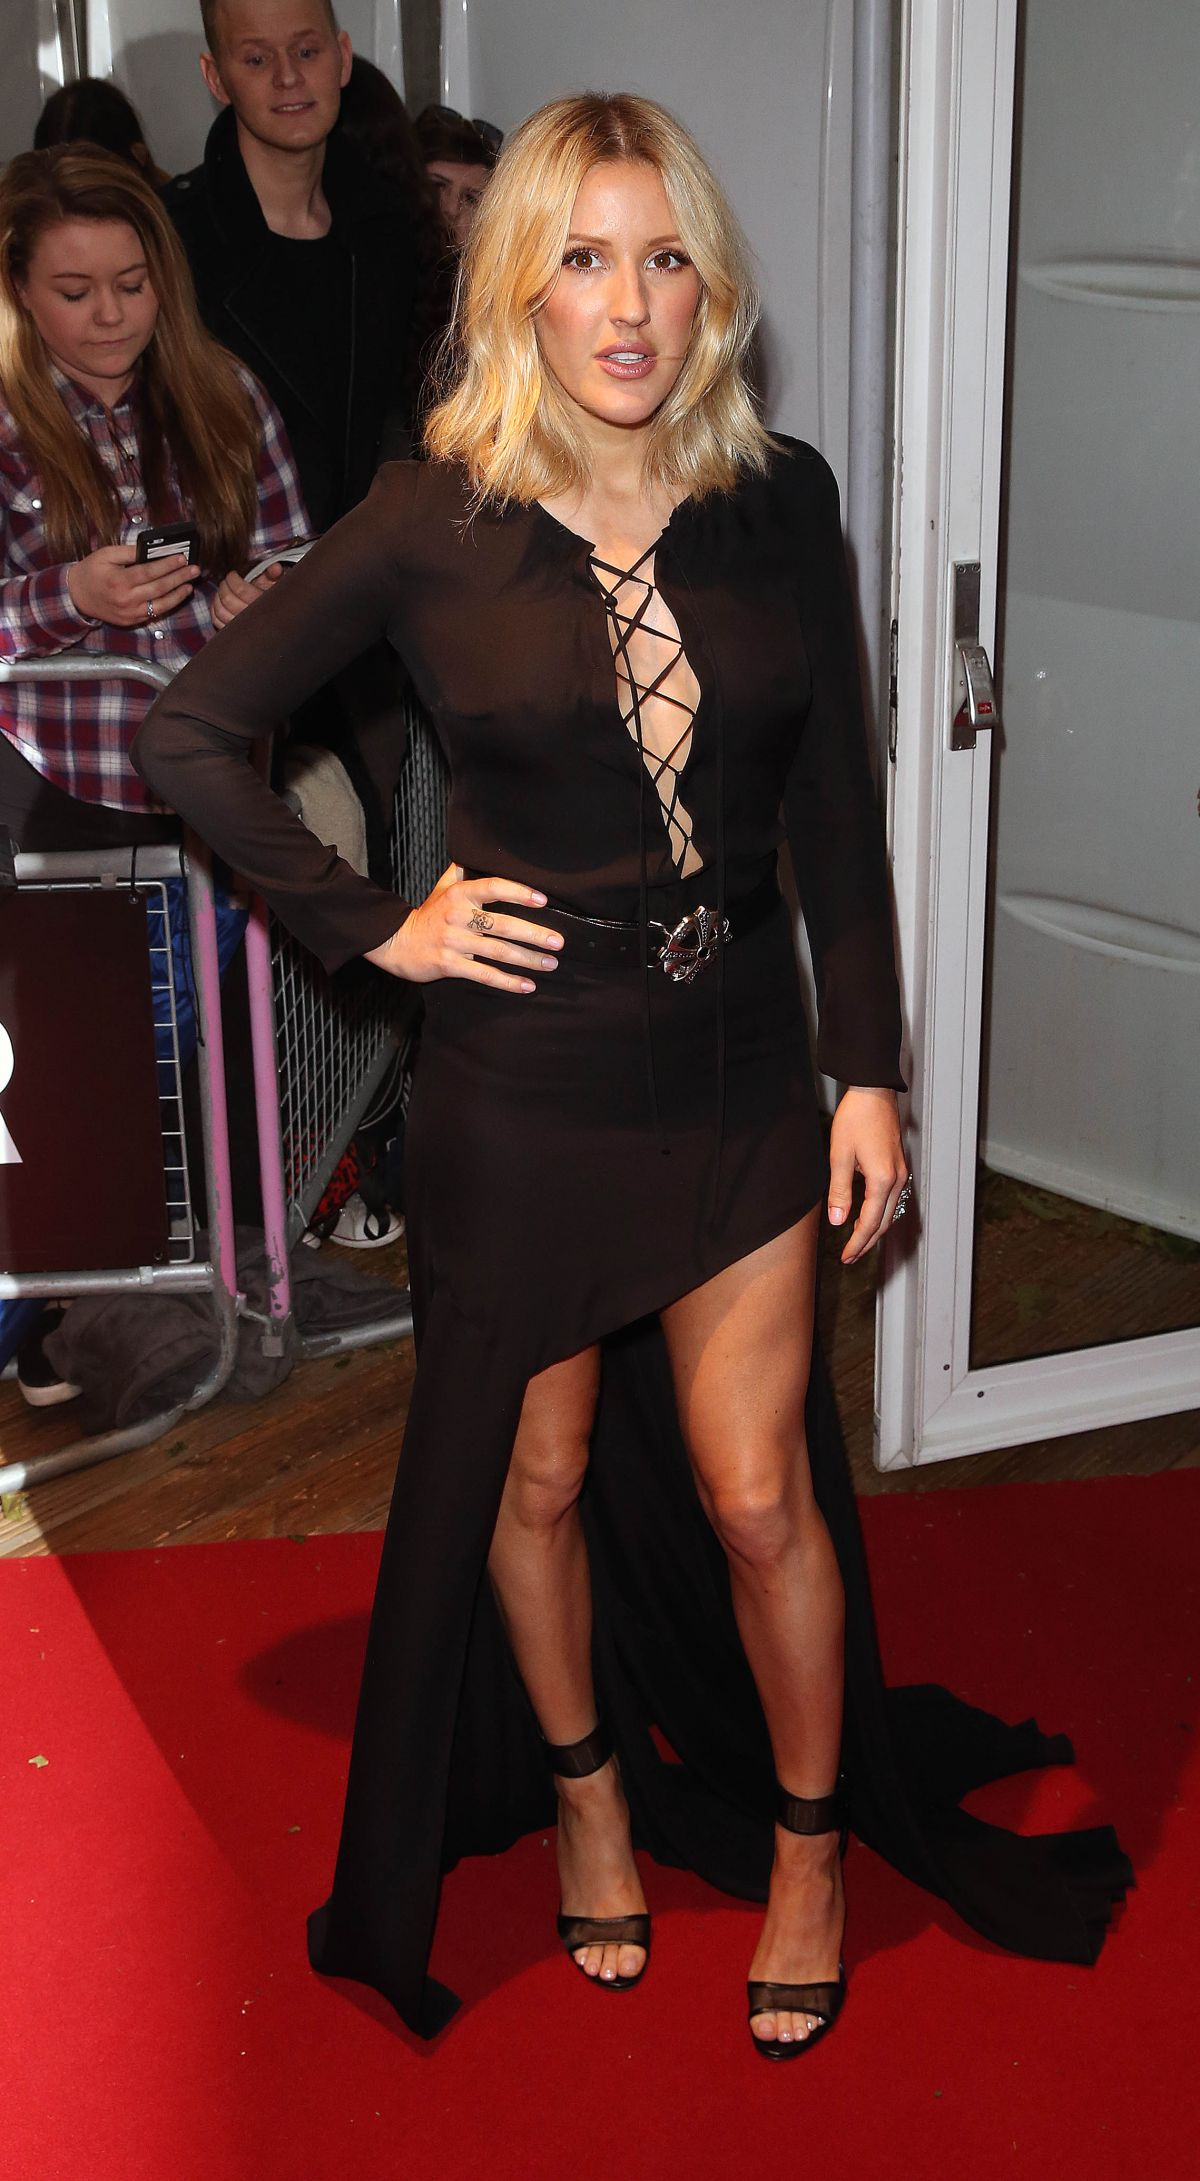 ELLIE GOULDING at Glamour Women of the Year Awards in London